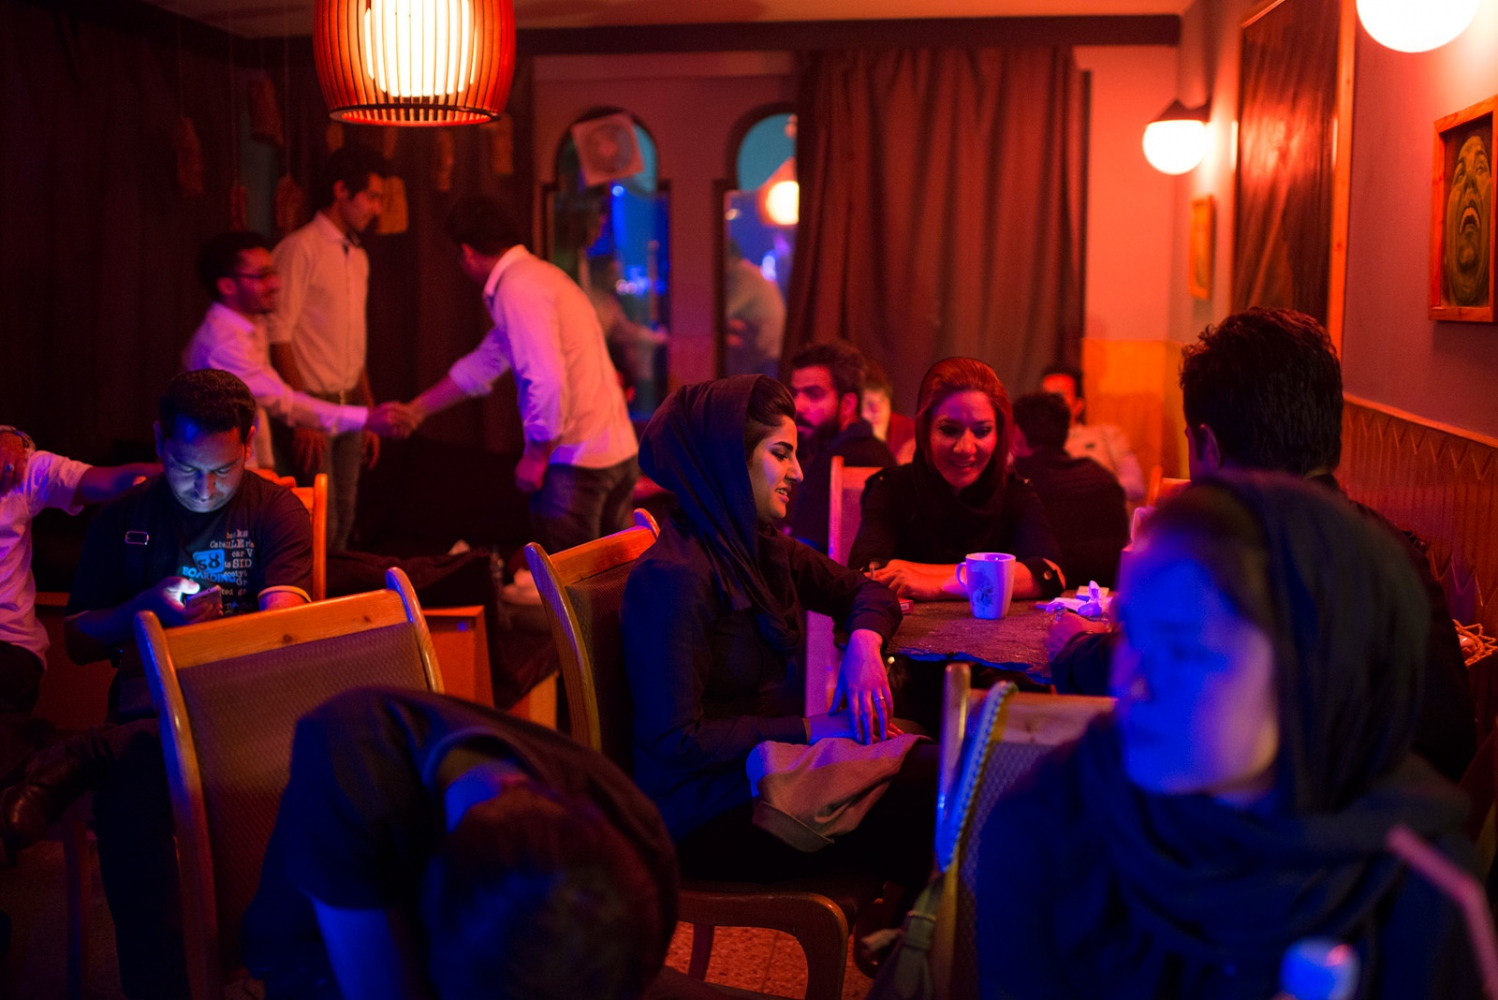 "KABUL, AFGHANISTAN | 2015-06-16 | Cactus Cafe is the newest addition to Kabul's trendy cafe scene, that has a beautiful patin and indoor stage that different music bands take it over every night. In the past, the culture of ""cafe neshini"" (hanging out at cafes) was a manly activity where as now, in the recent years, it has become very popular among afghan girls and boys, especially in western kabul. Everyday a new cafe pops out in Pule Surkh in Karte 3 neighborhood."